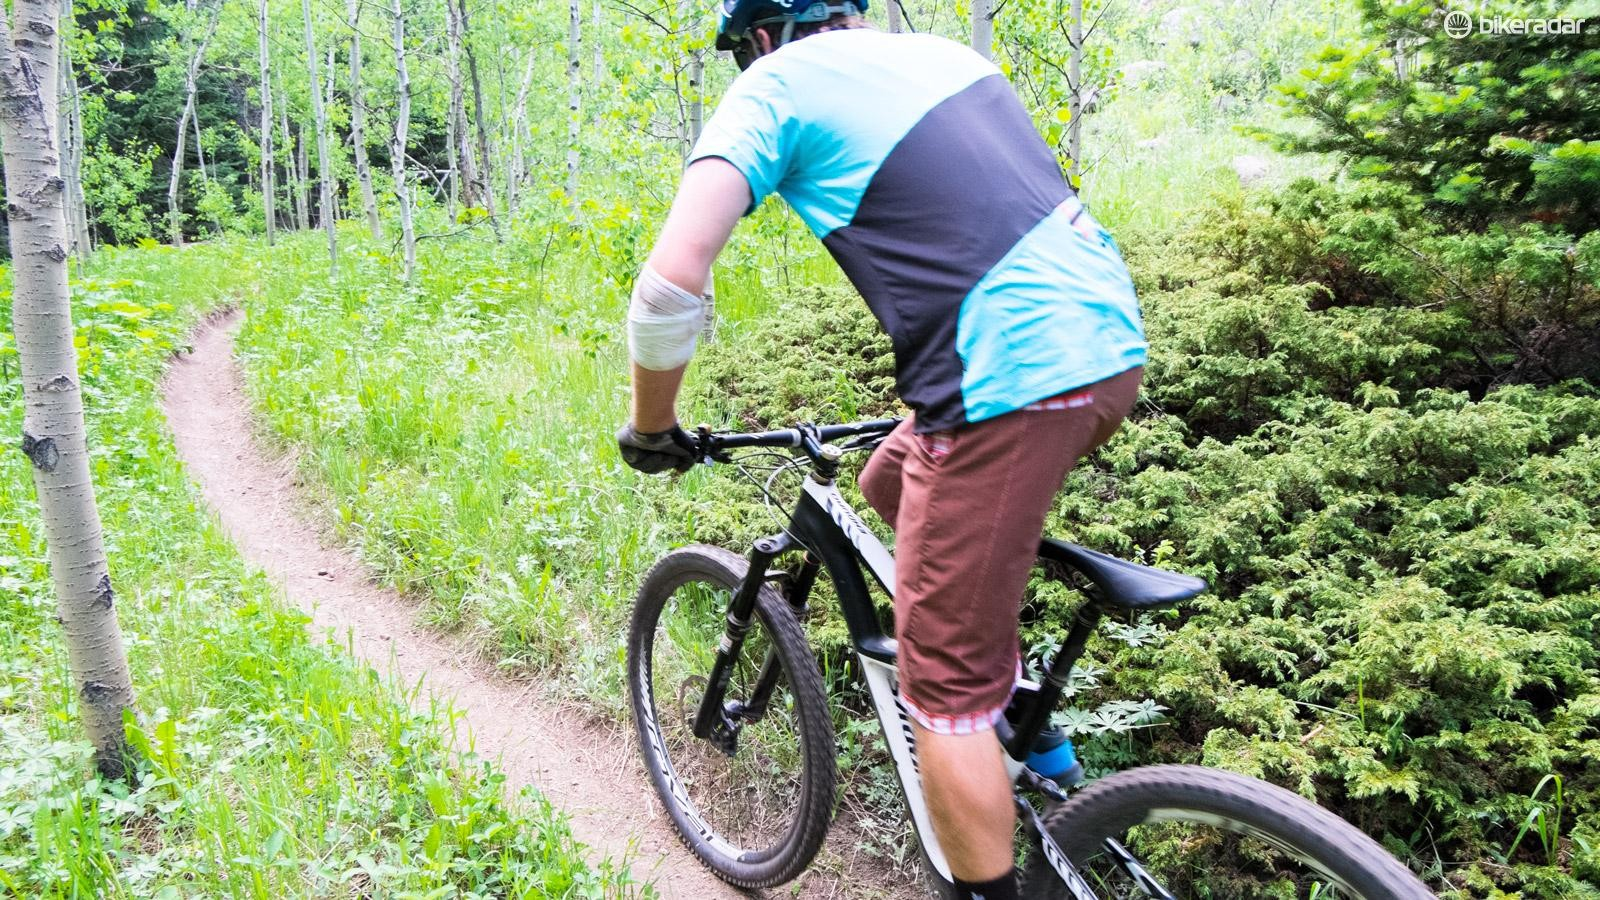 With the low weight and outstanding function, all day rides can be on the agenda